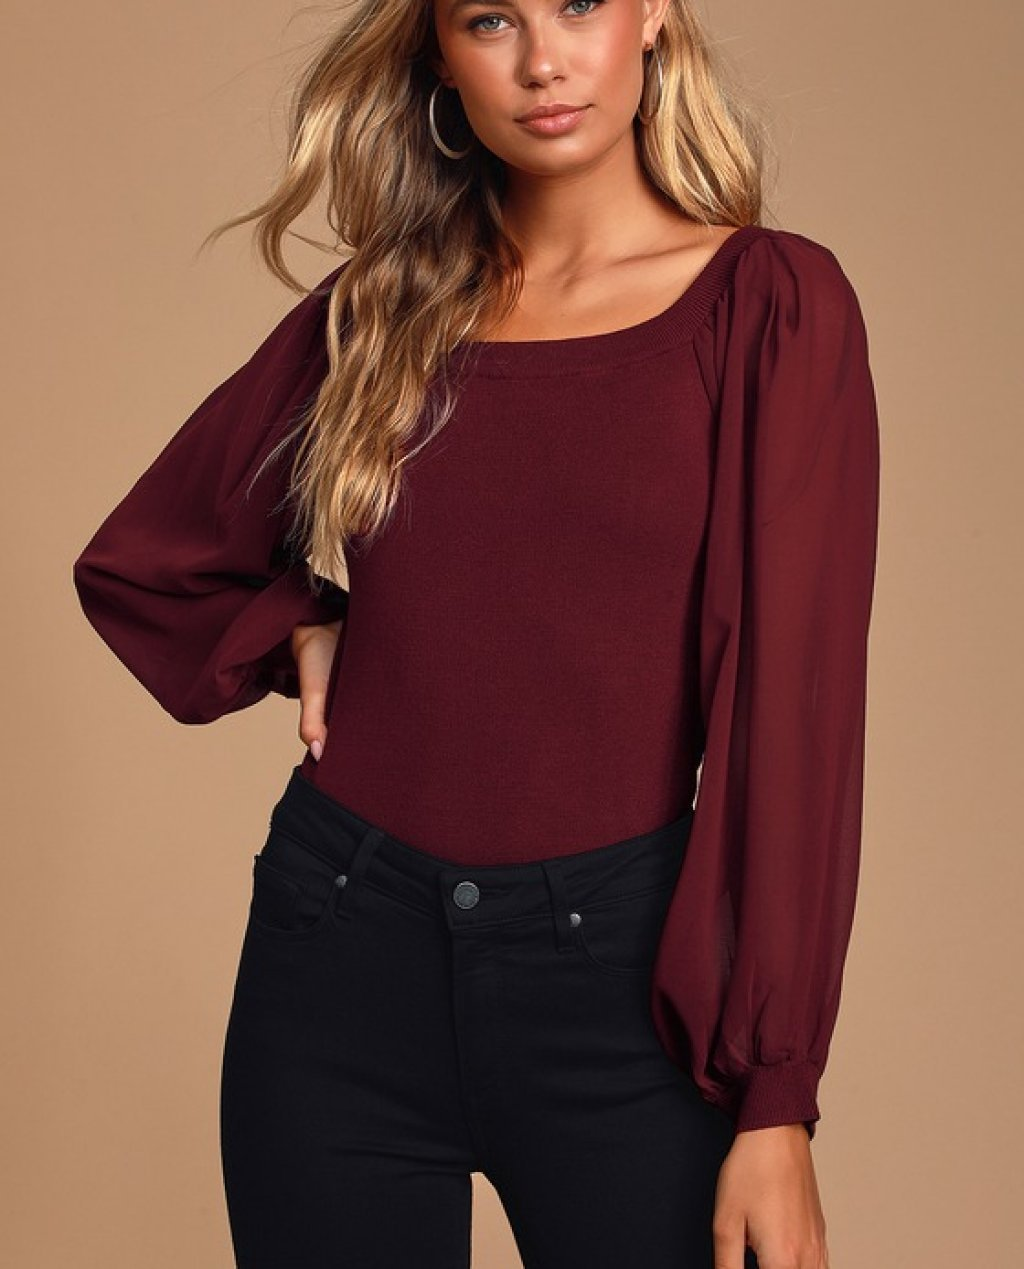 Danae Burgundy Chiffon Balloon Sleeve Top